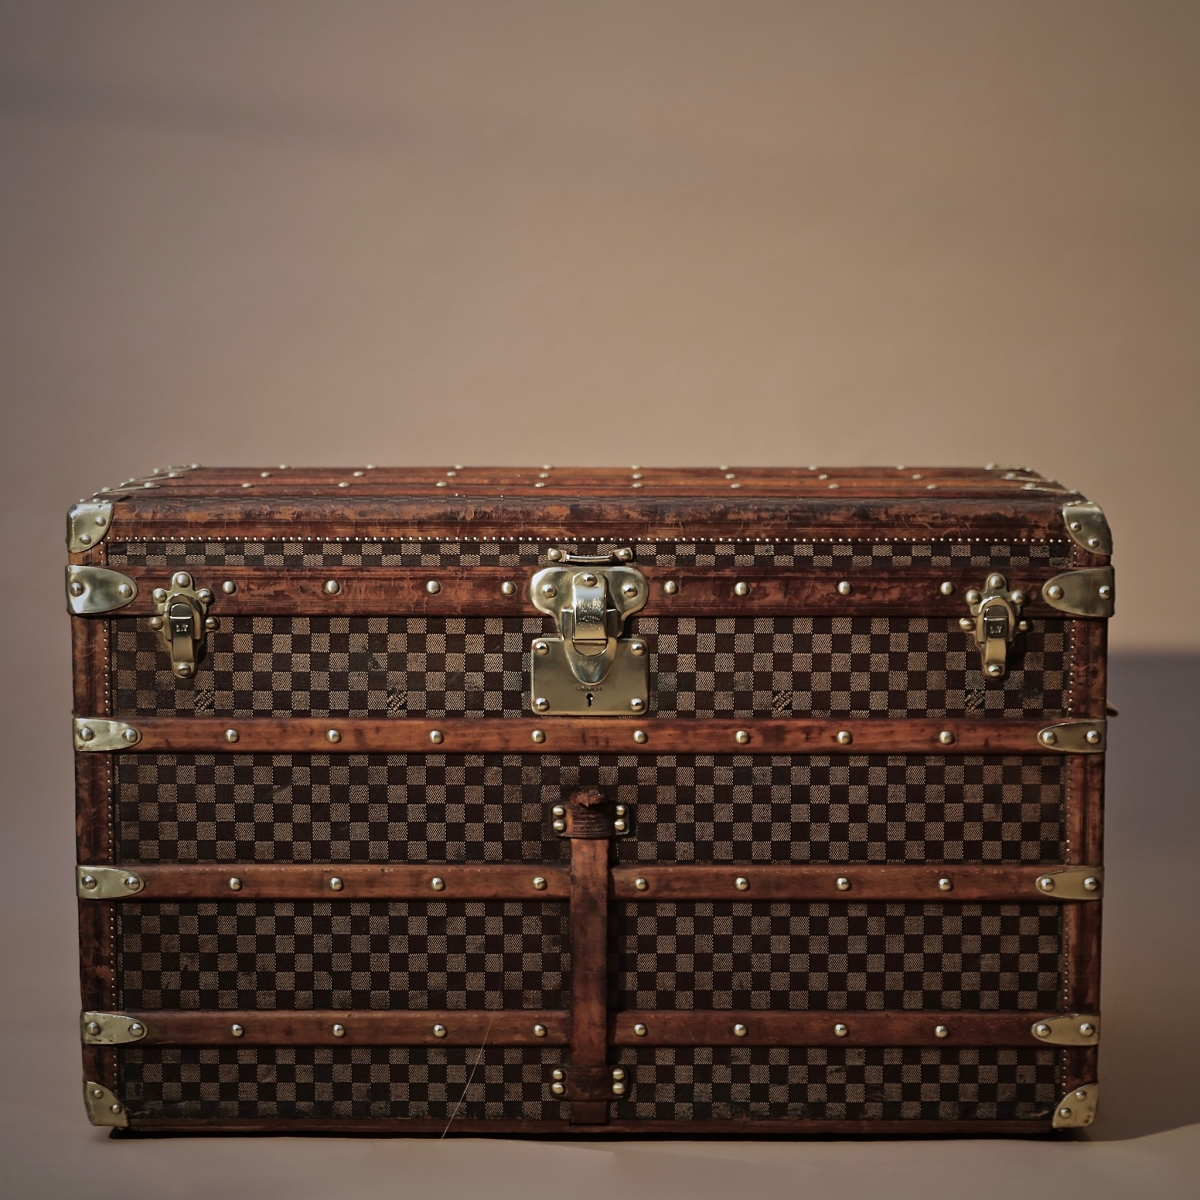 the-well-traveled-trunk-louis-vuitton-thumbnail-product-5717